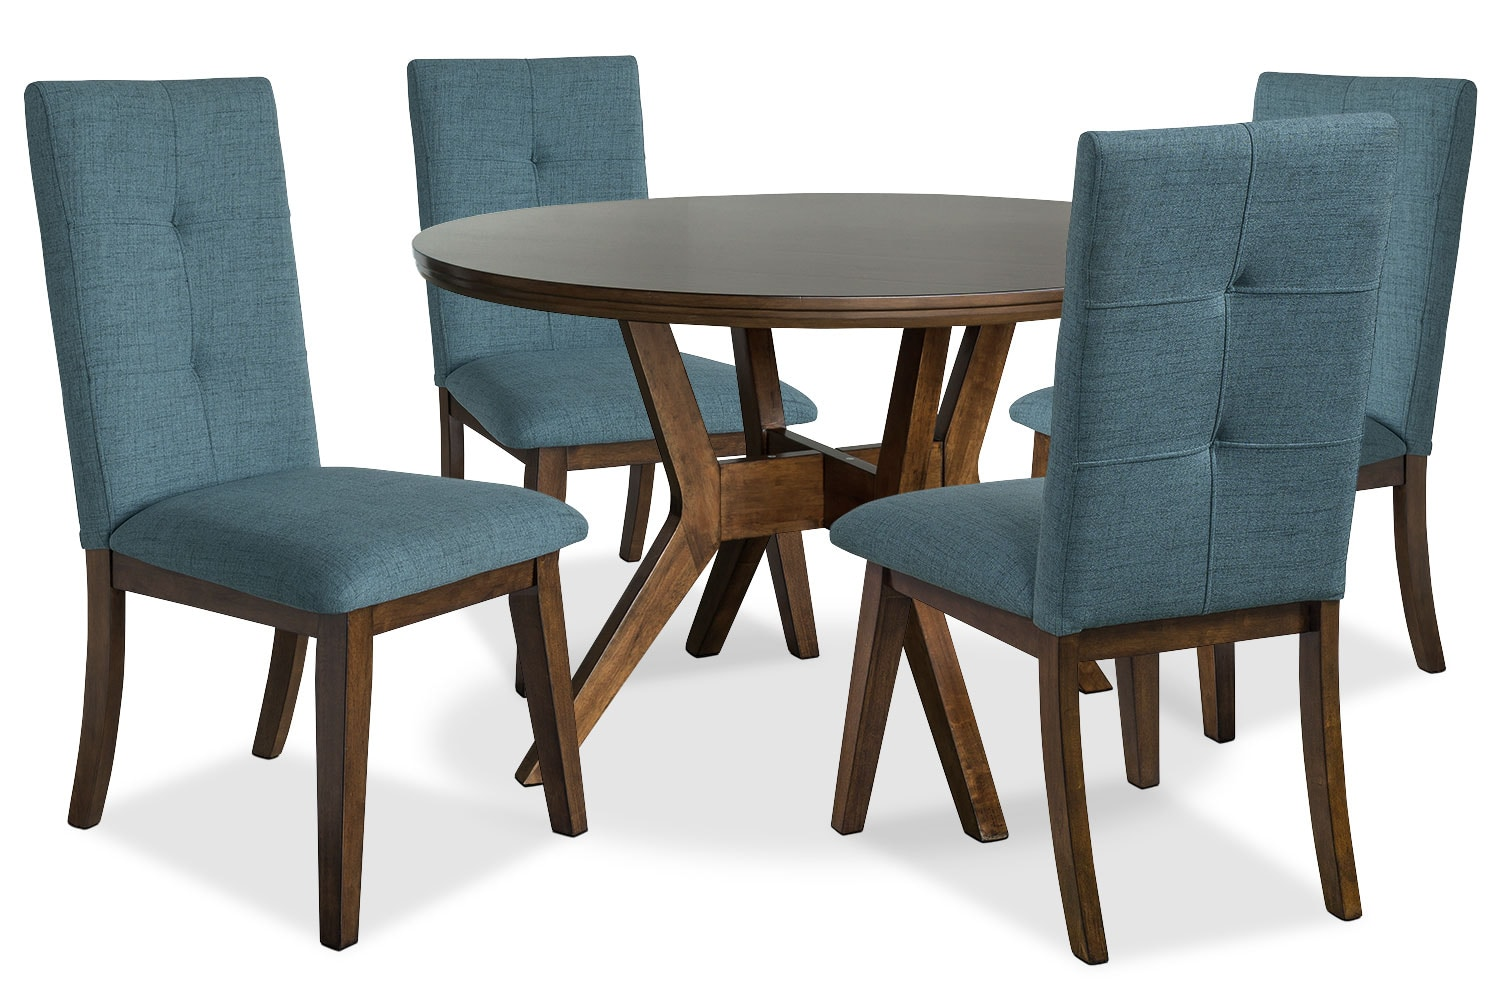 Dining Room Furniture - Chelsea 5-Piece Round Dining Table Package with Aqua Chairs